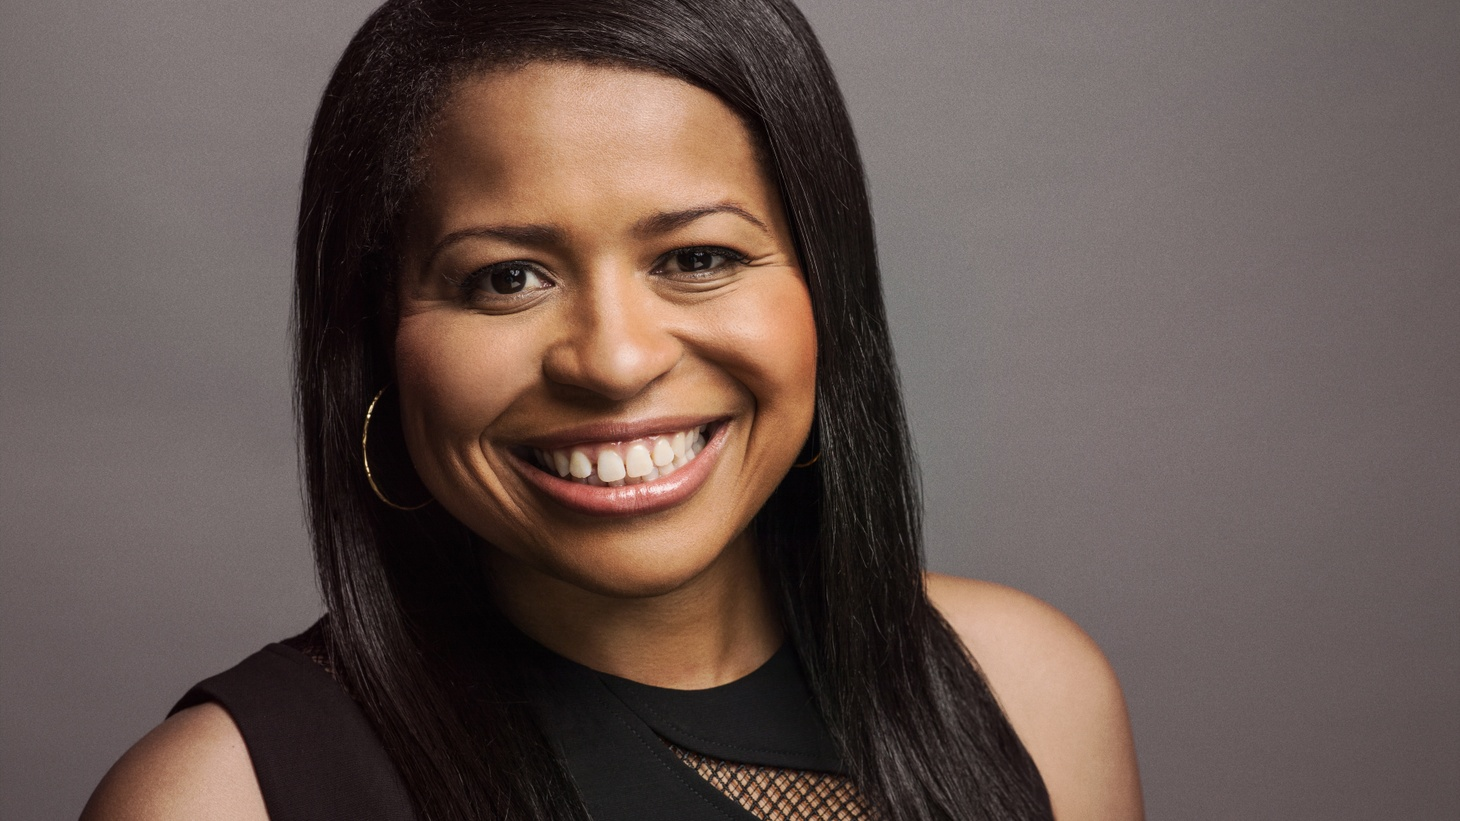 Courtney Kemp, creator of the Starz drama 'Power,' is one of the few women of color running her own TV show. With the push for increased diversity in the industry, Kemp says it's easier for networks to open their wallets than their hearts.